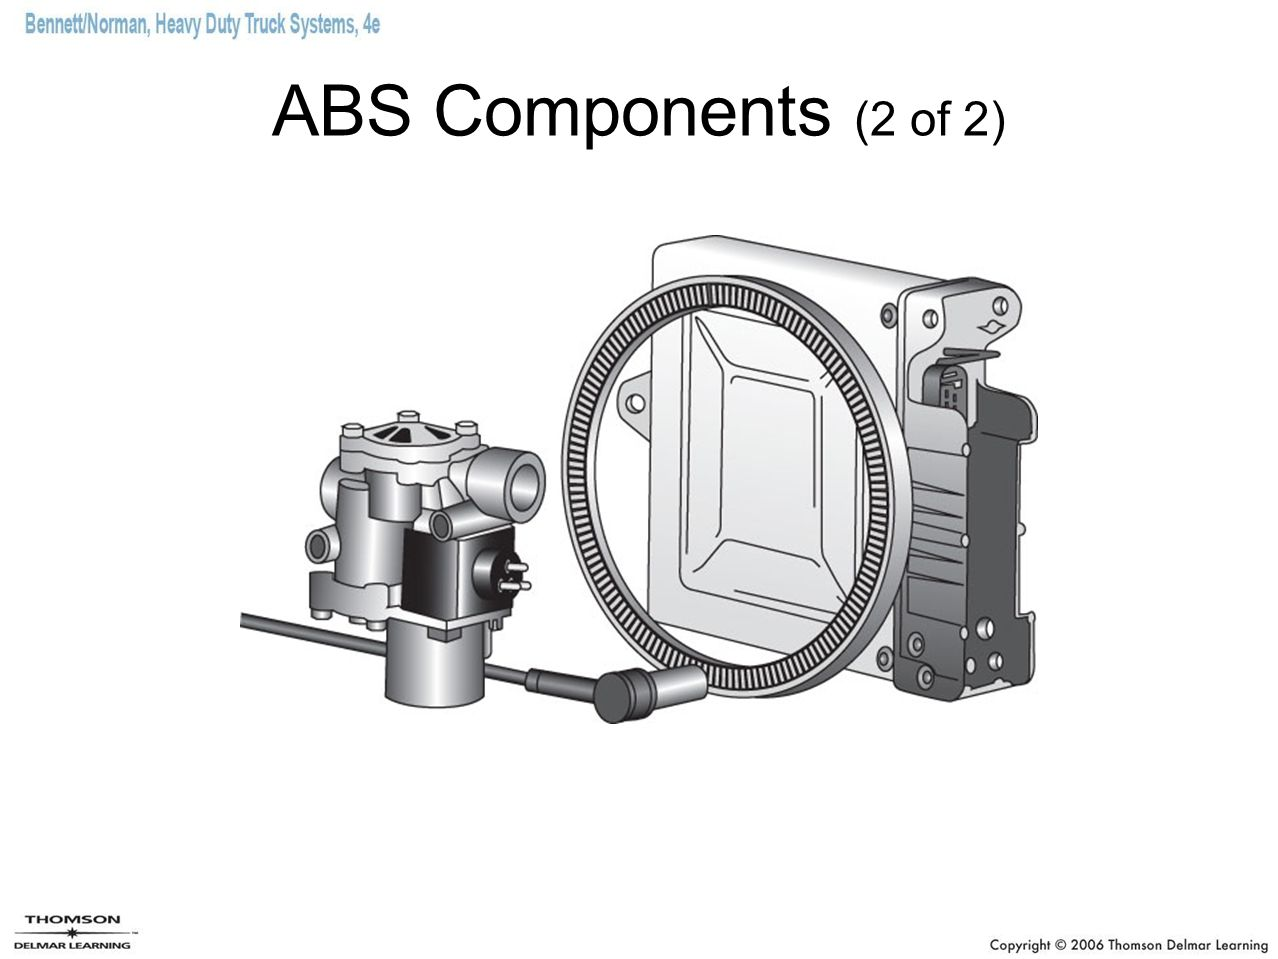 ABS Components (2 of 2)